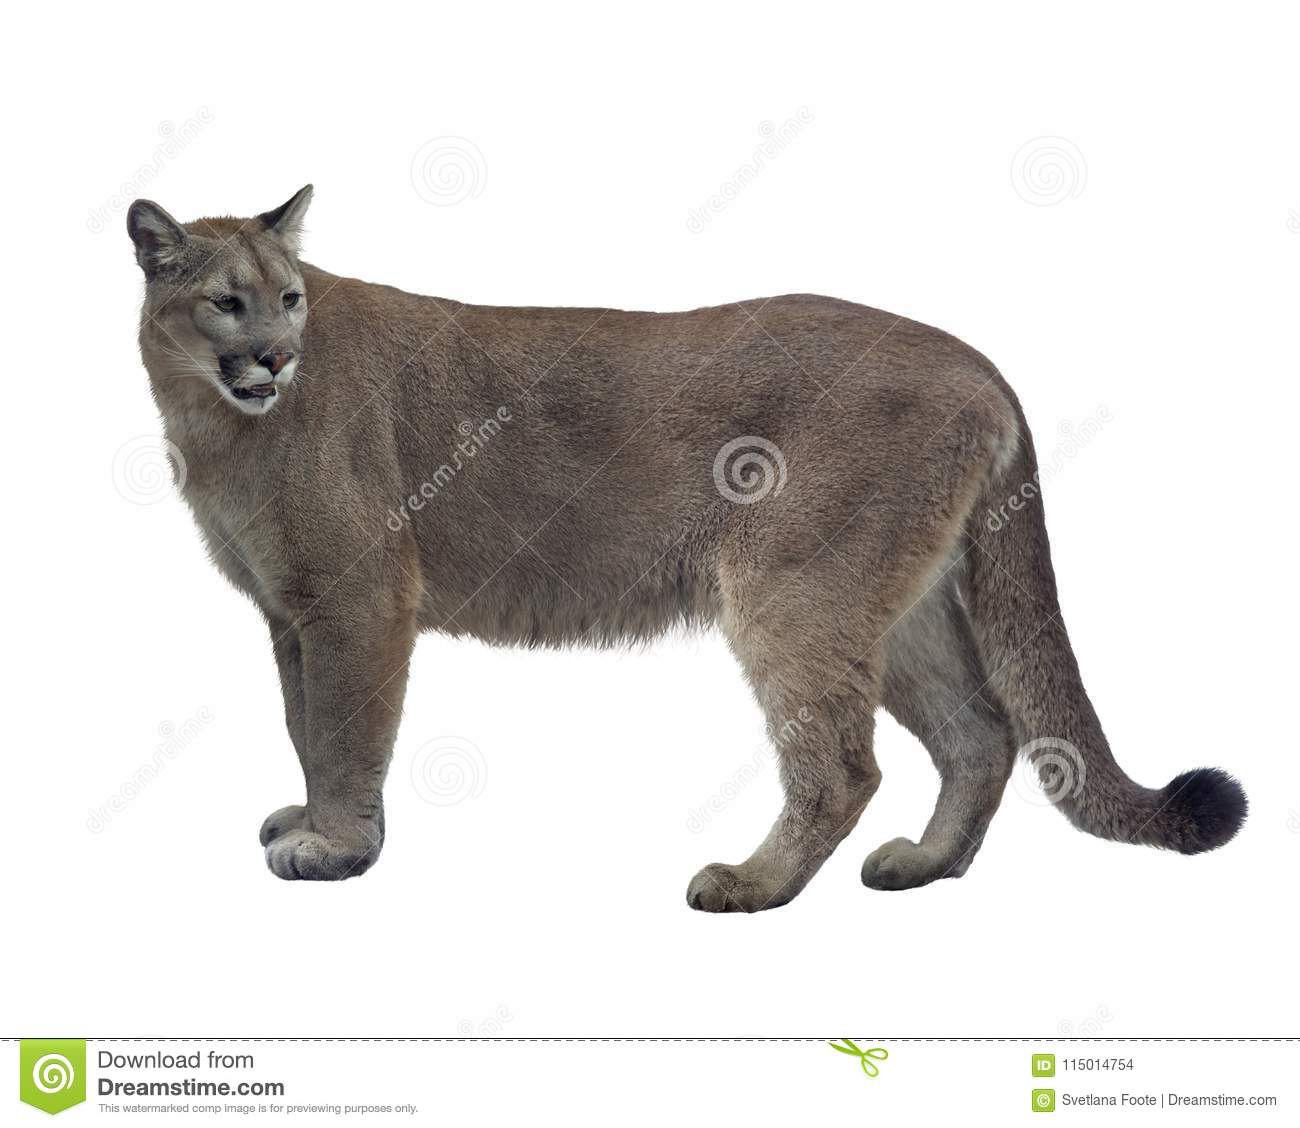 56cefa386d5 Florida panther or cougar stock photo. Image of brown - 115014754